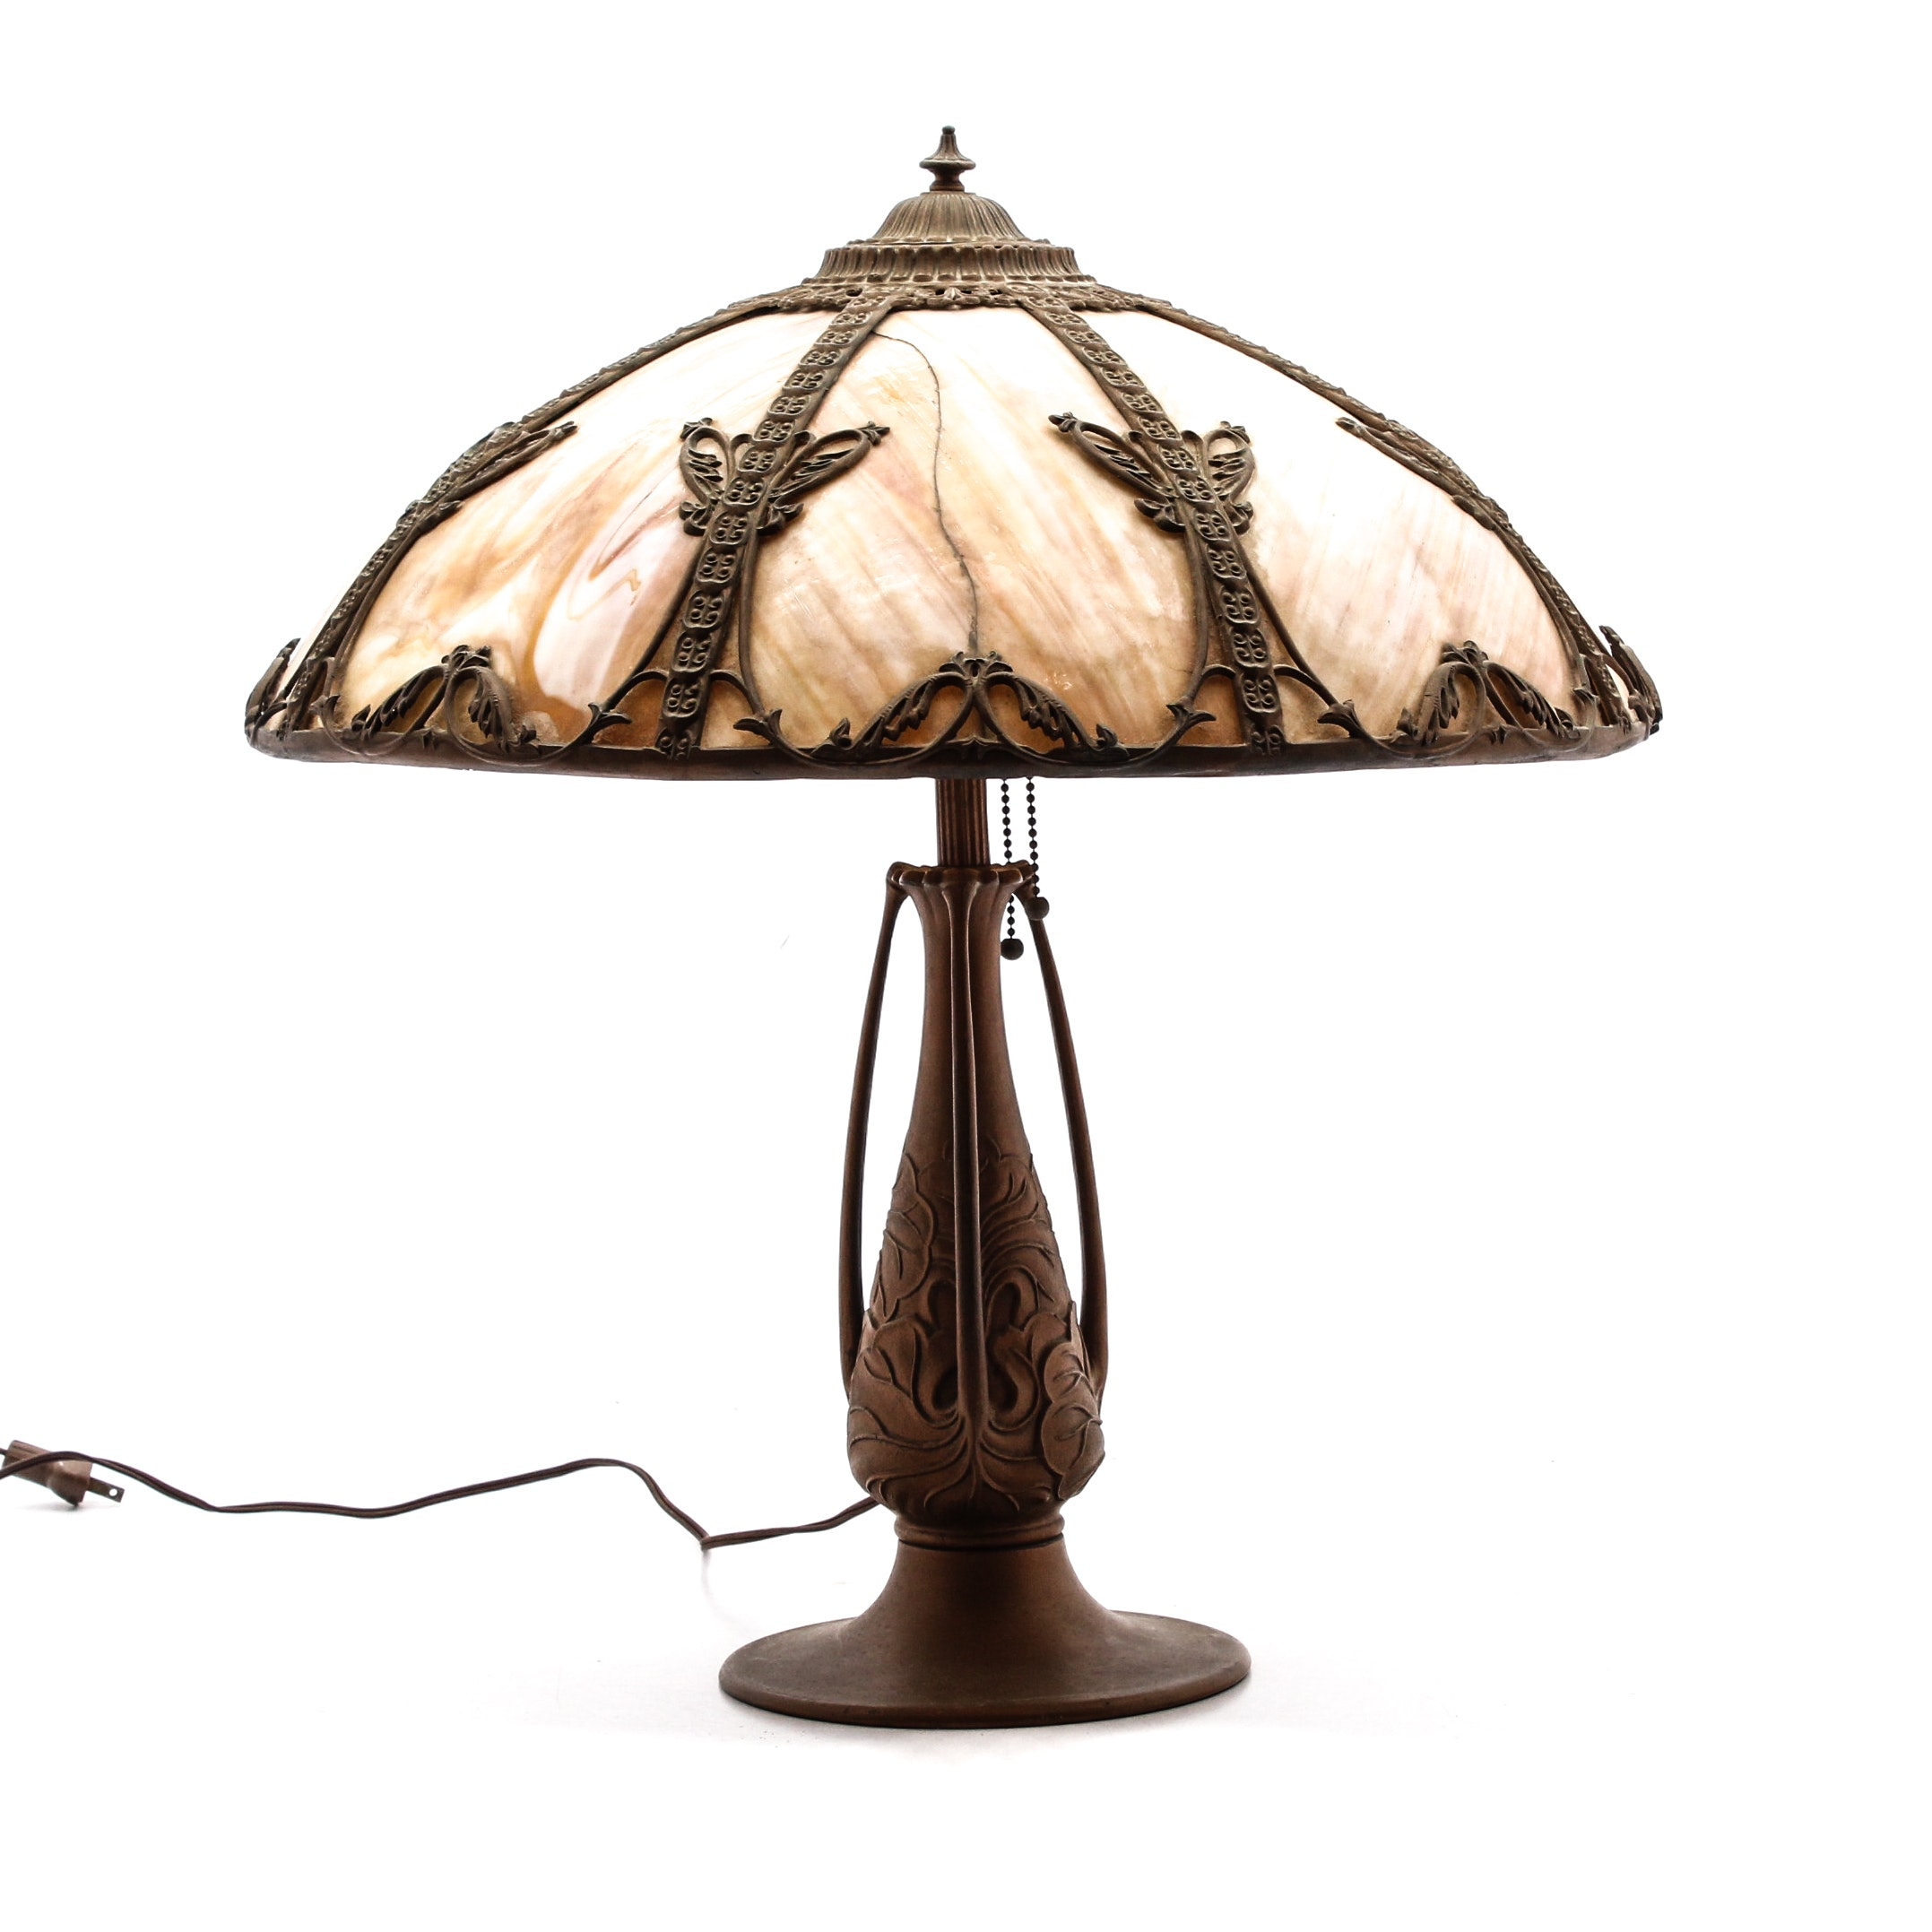 Art Nouveau Table Lamp with Slag Glass Shade, circa 1900, After Miller